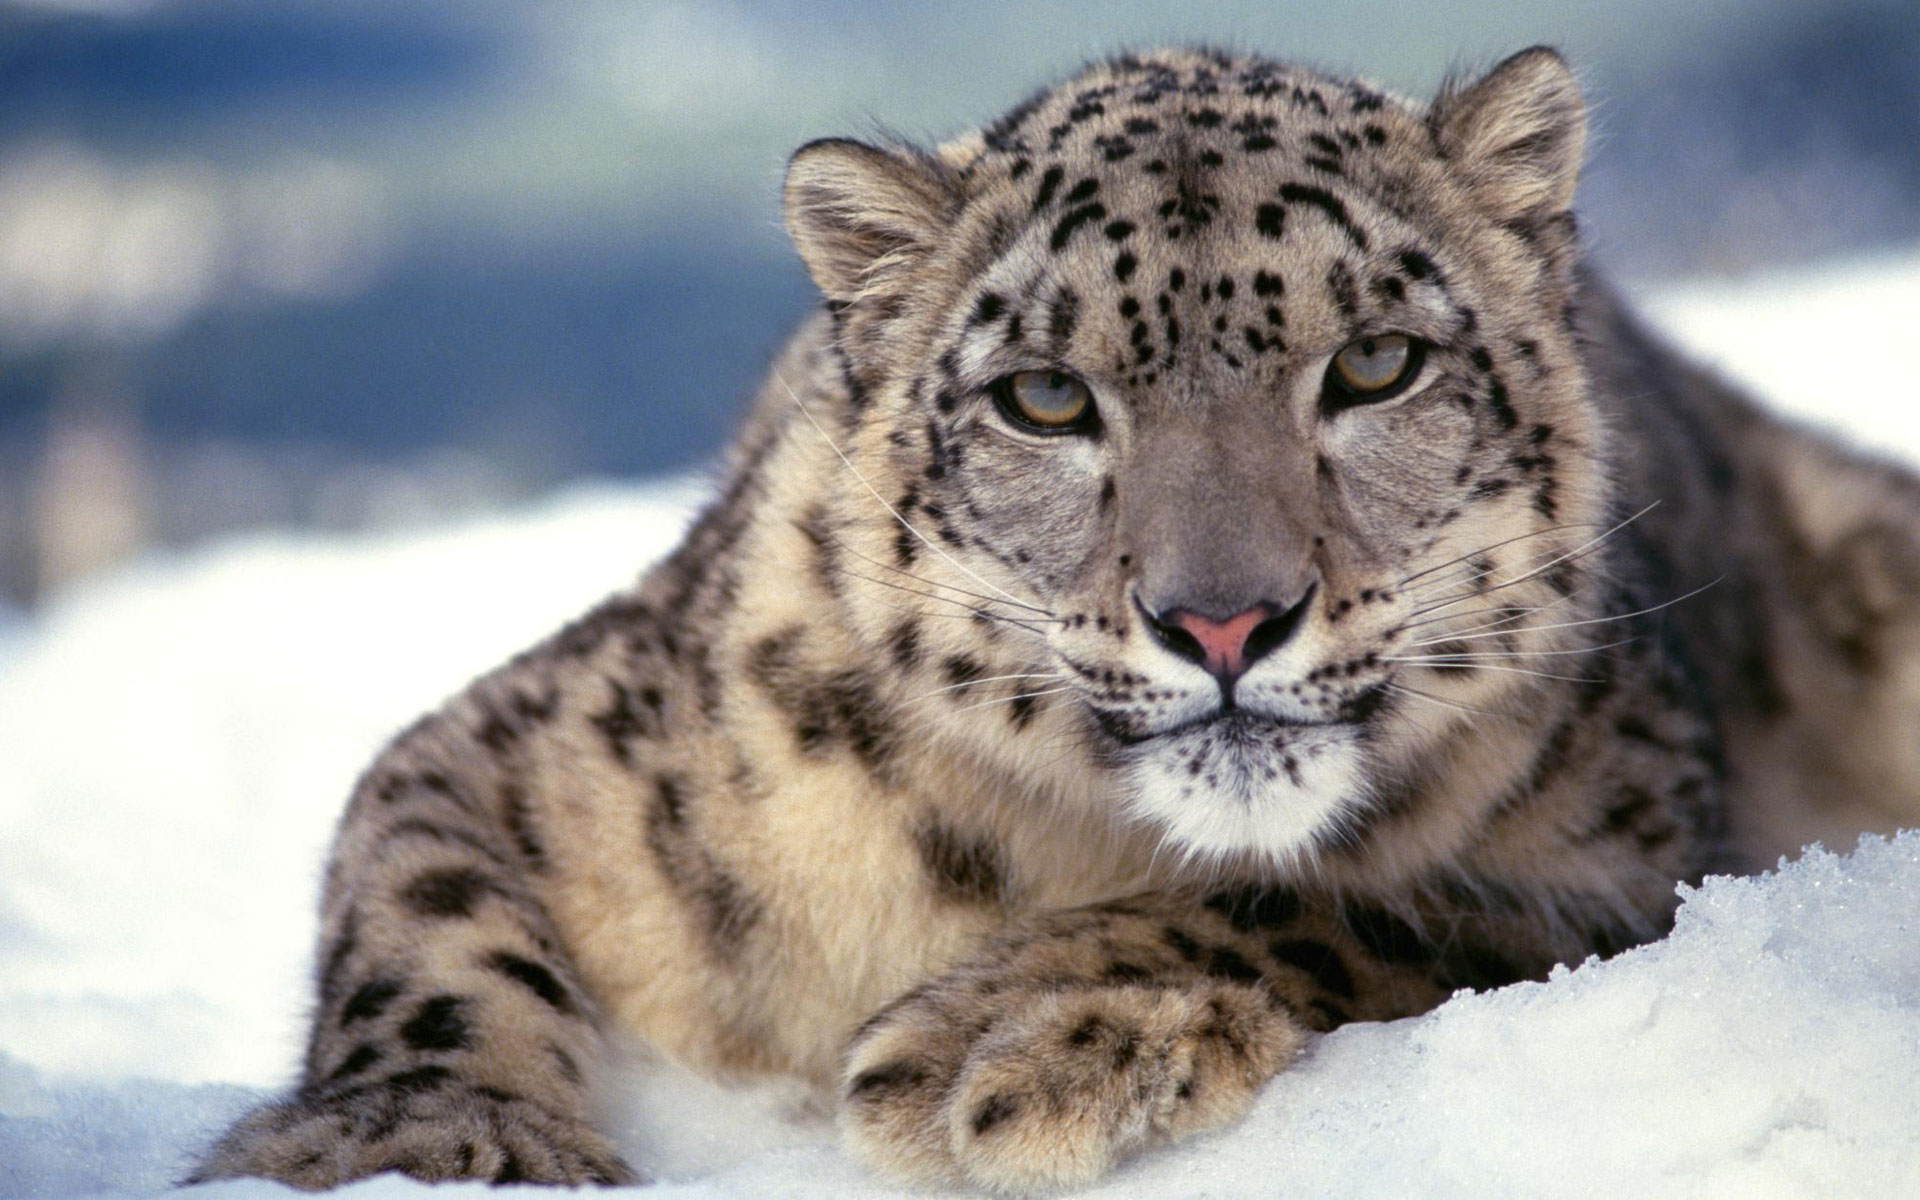 Scary Snow Leopard 691.84 Kb